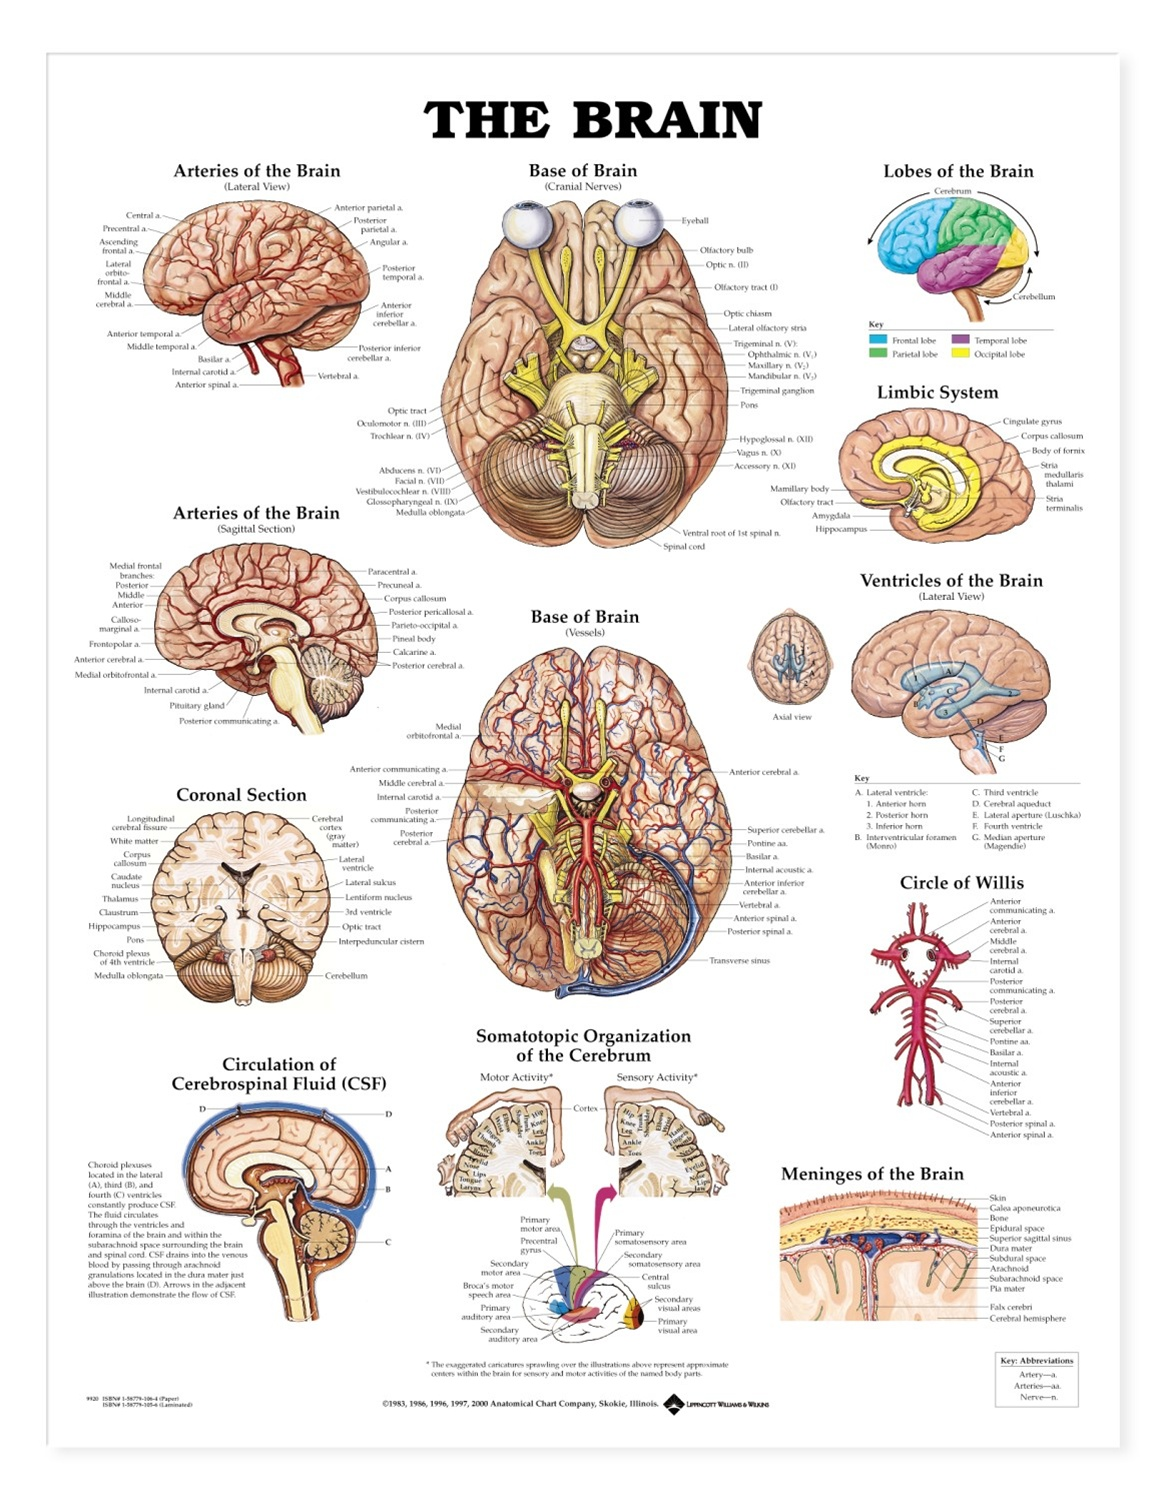 The brain anatomical chart anatomy models and anatomical charts the brain anatomical chart ccuart Gallery